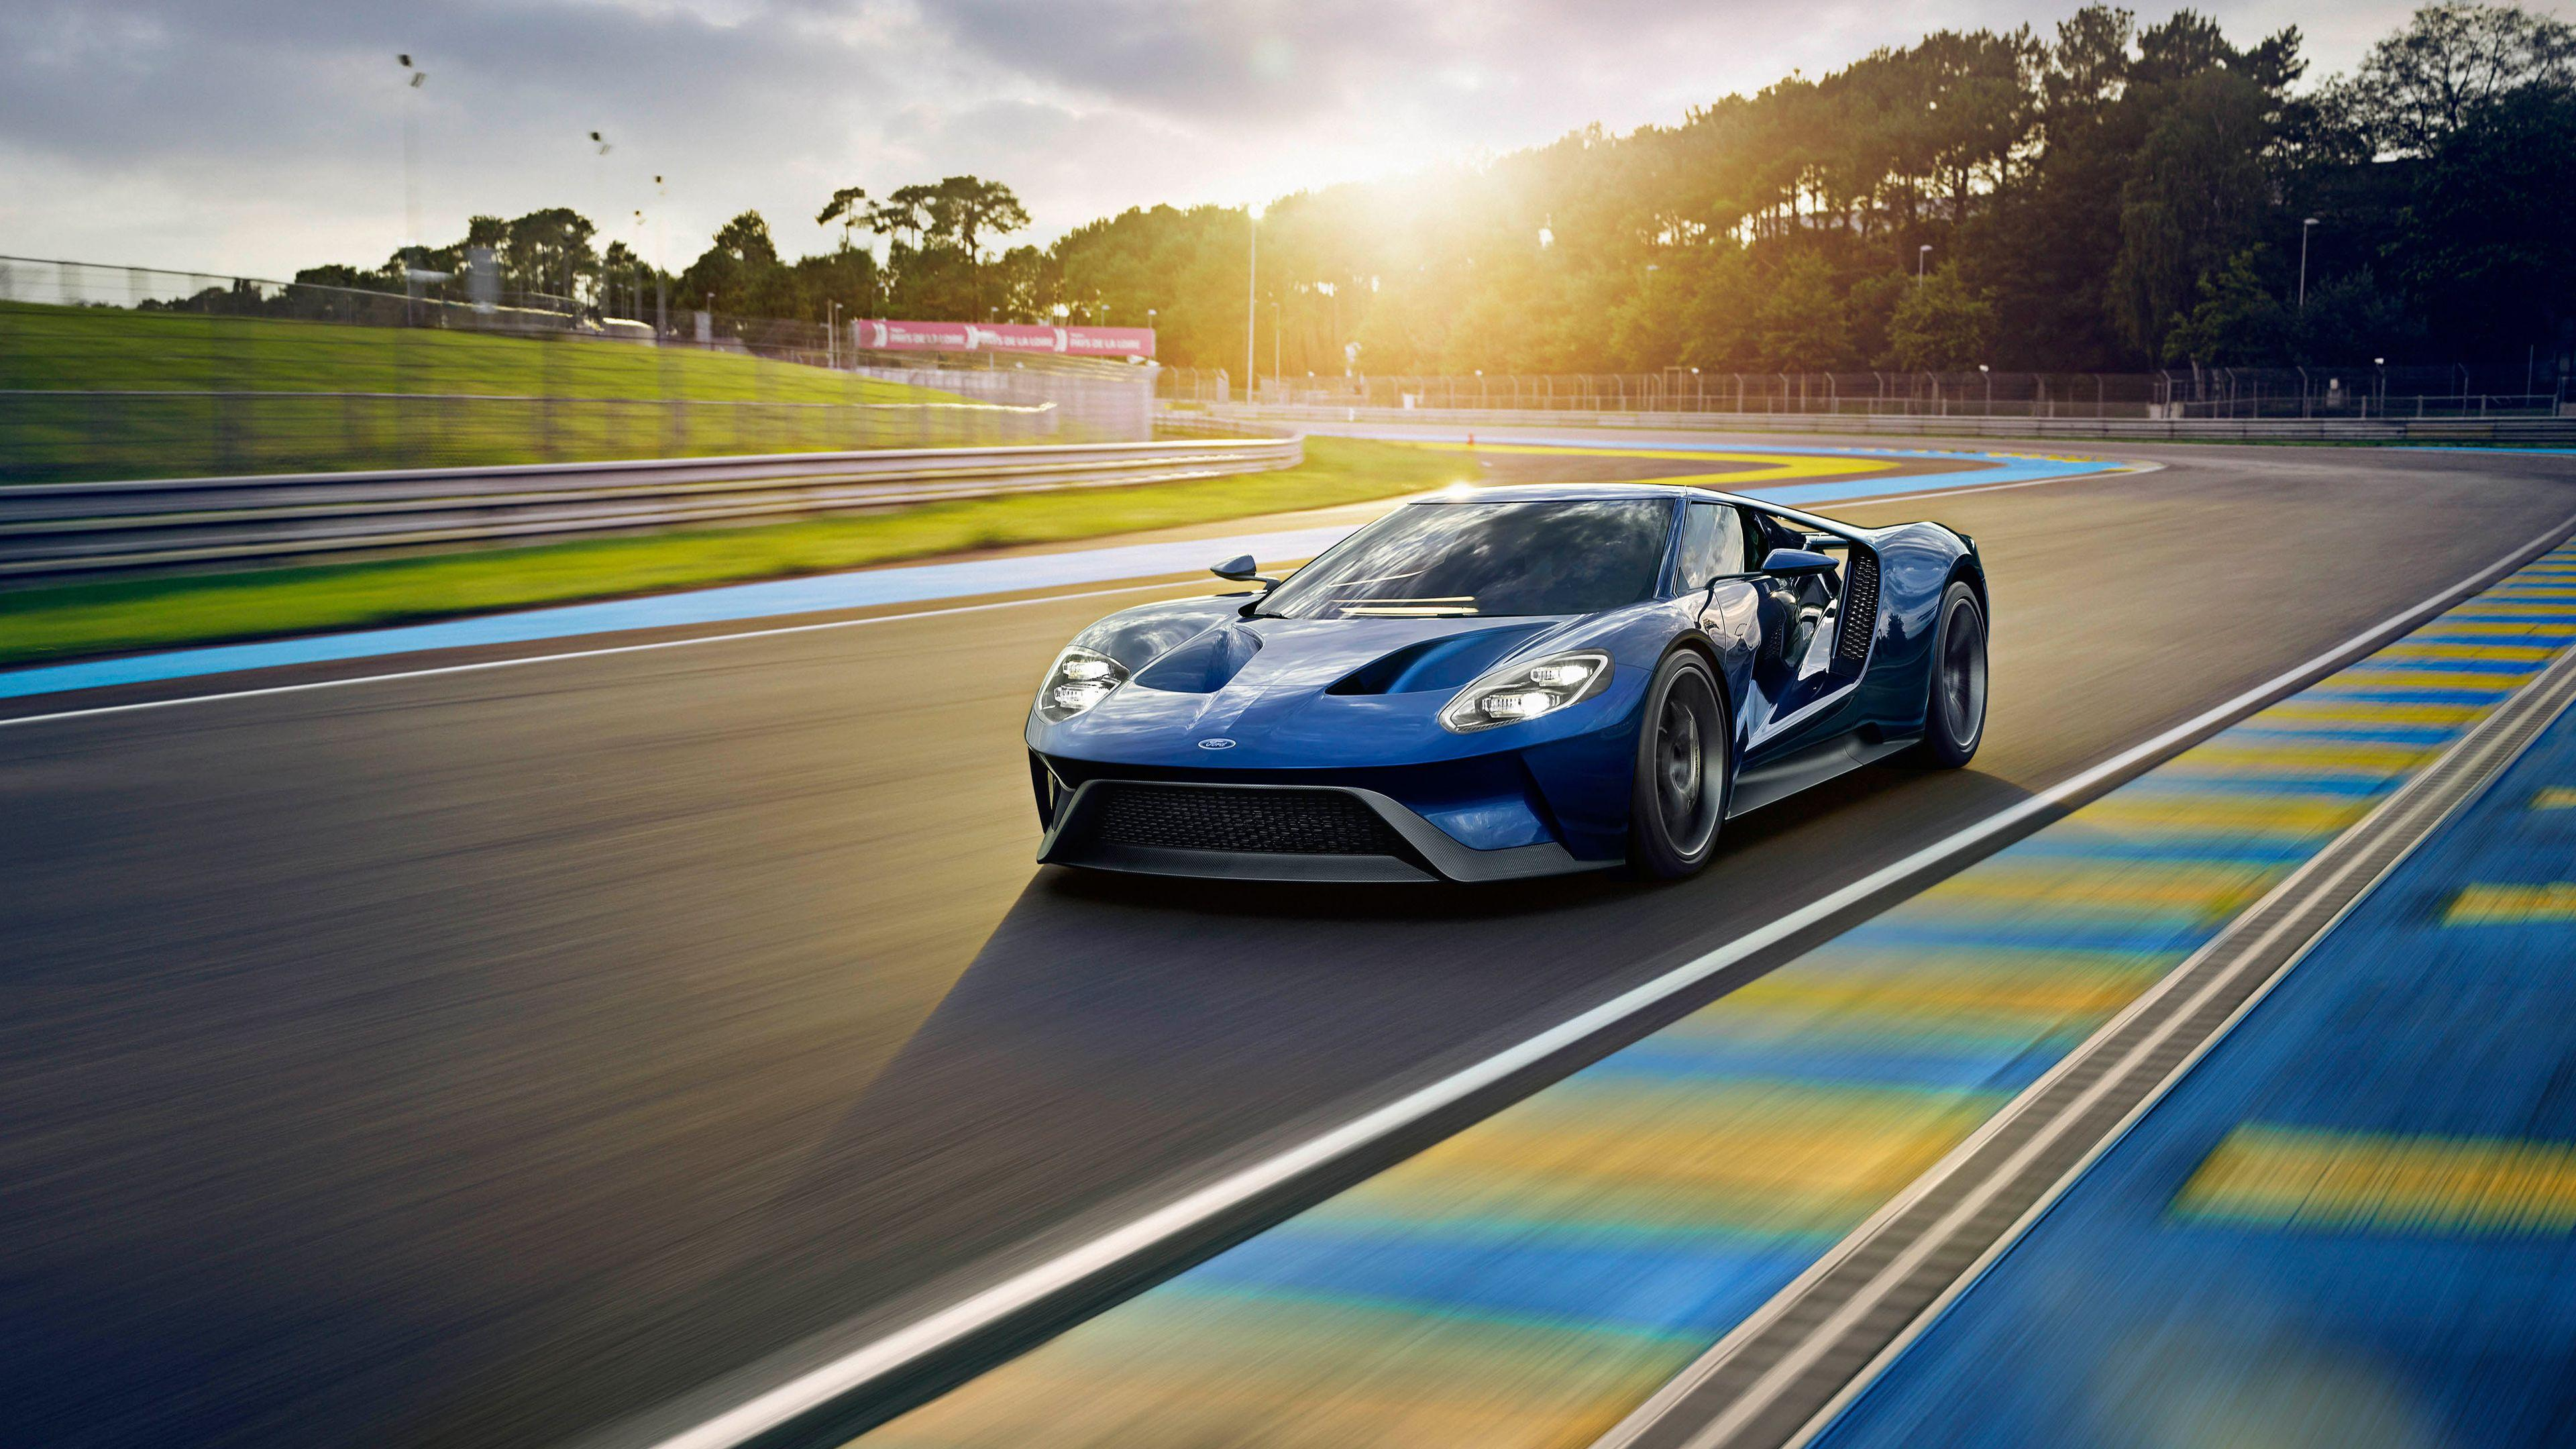 Ford Gt 2017 Wallpapers Wallpaper Cave